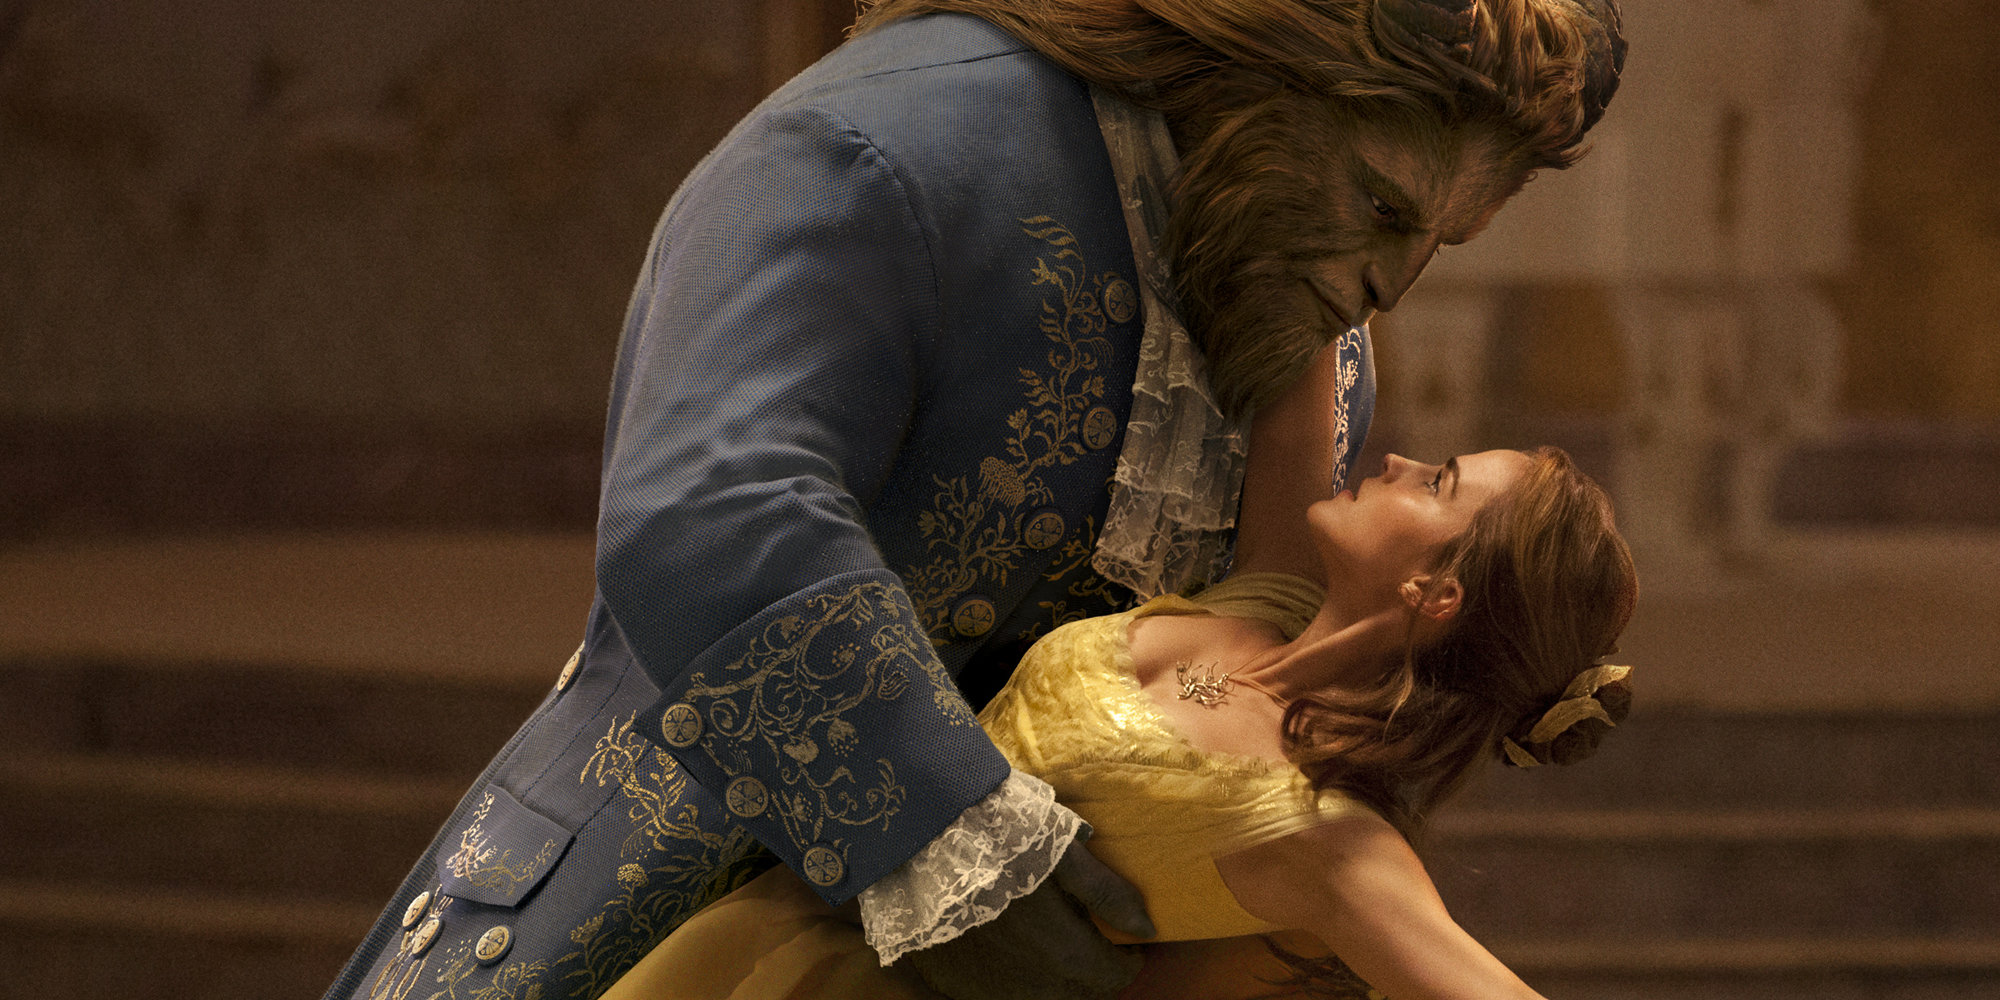 Beauty and the beast retelling with